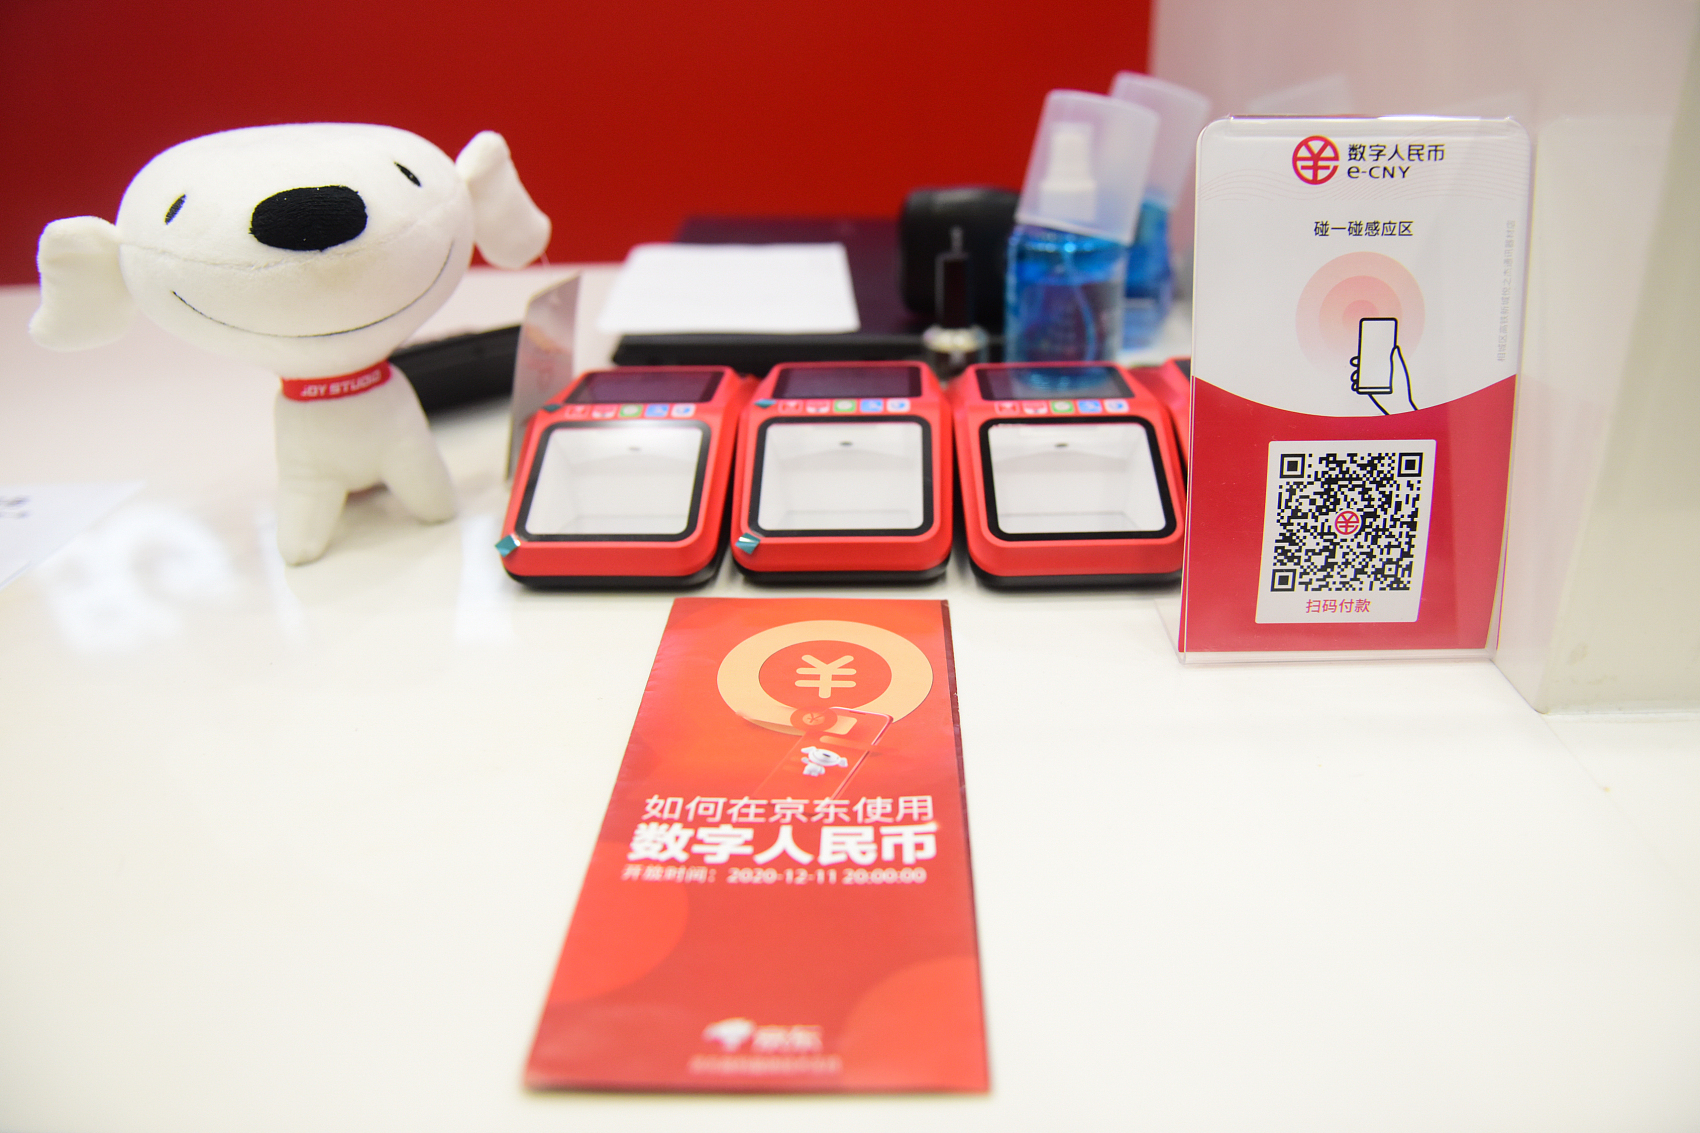 Digital RMB equipped smart card tested in Shanghai